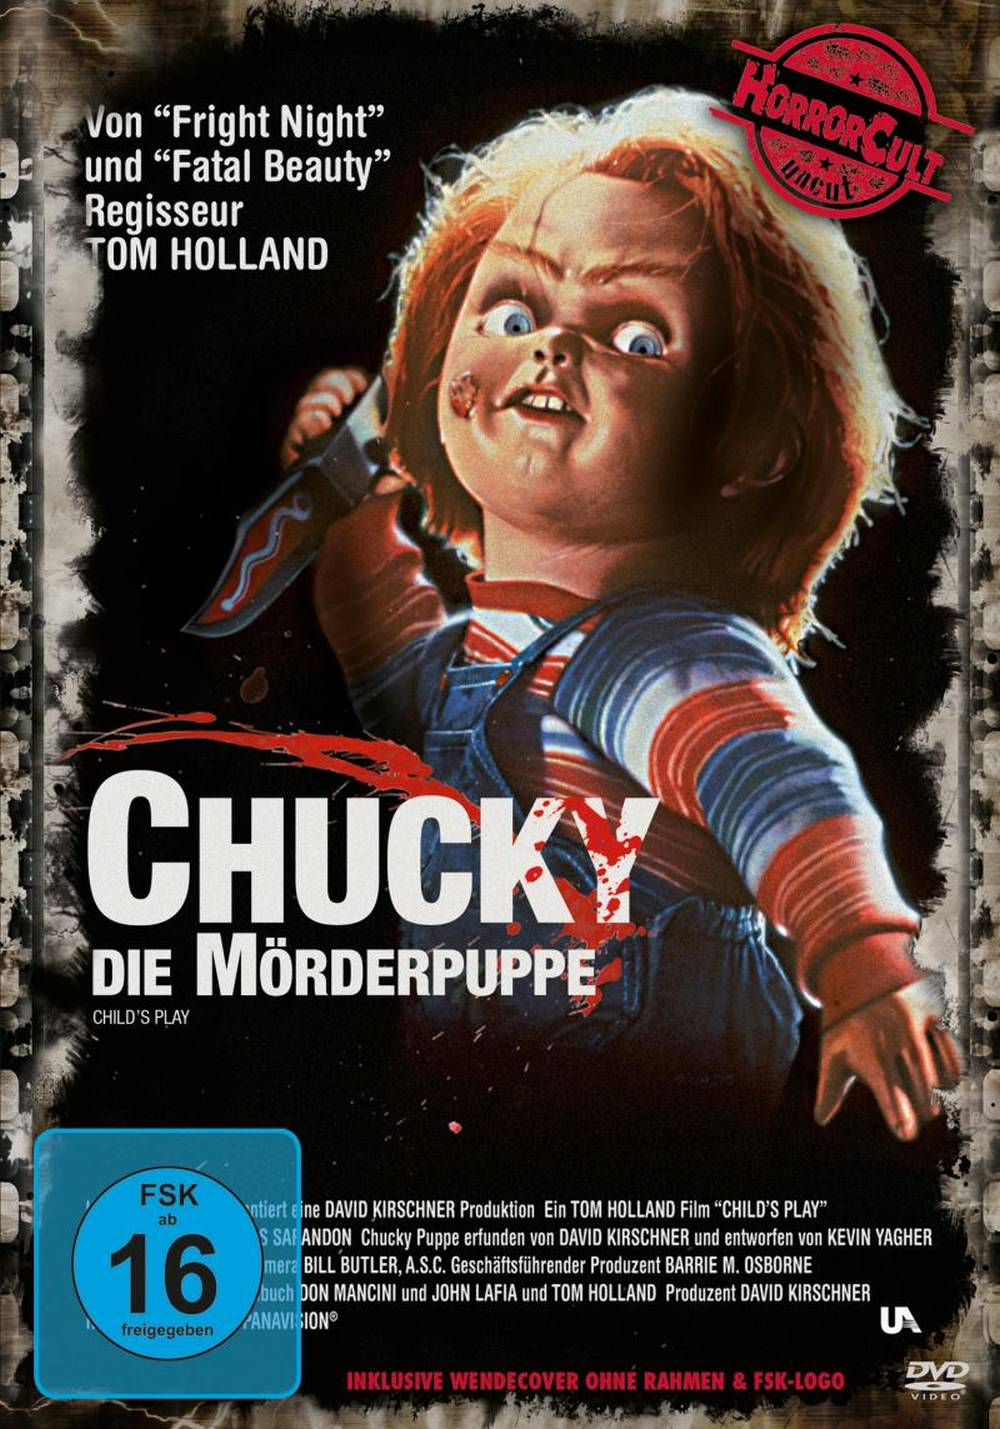 Chucky Die Mrderpuppe Film 1988 Scary Moviesde